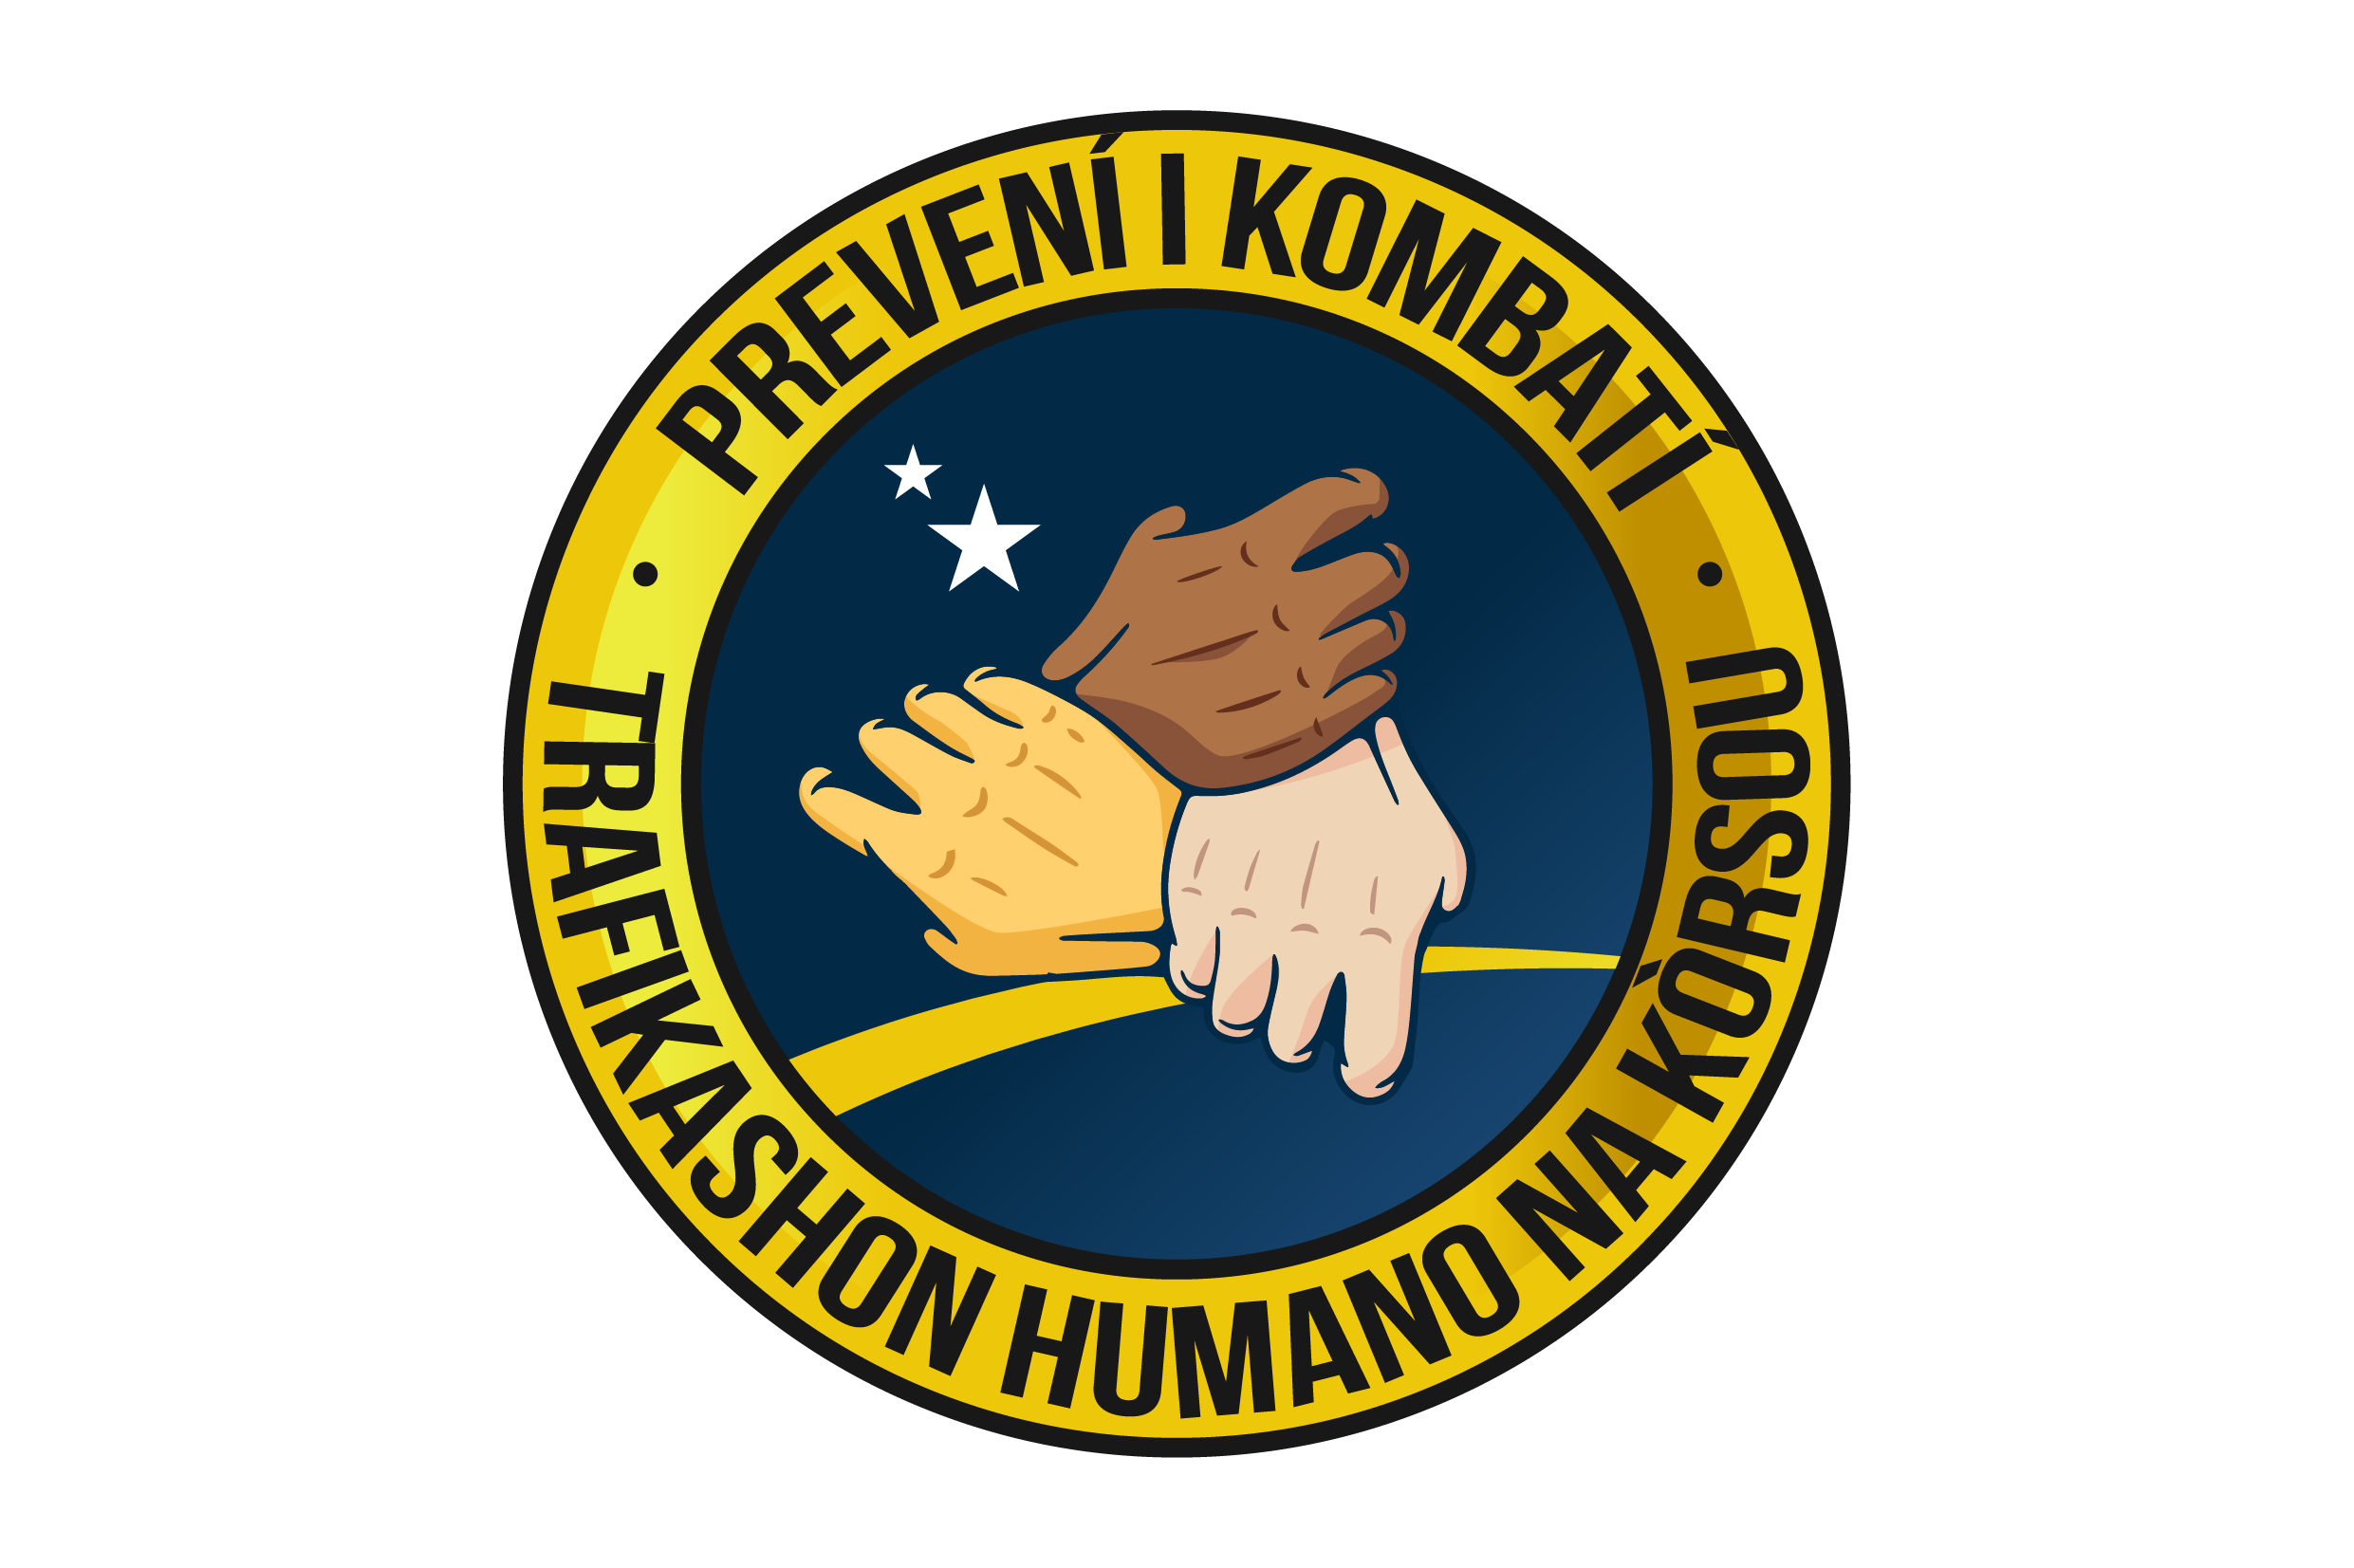 Human Trafficking Prevention Curacao